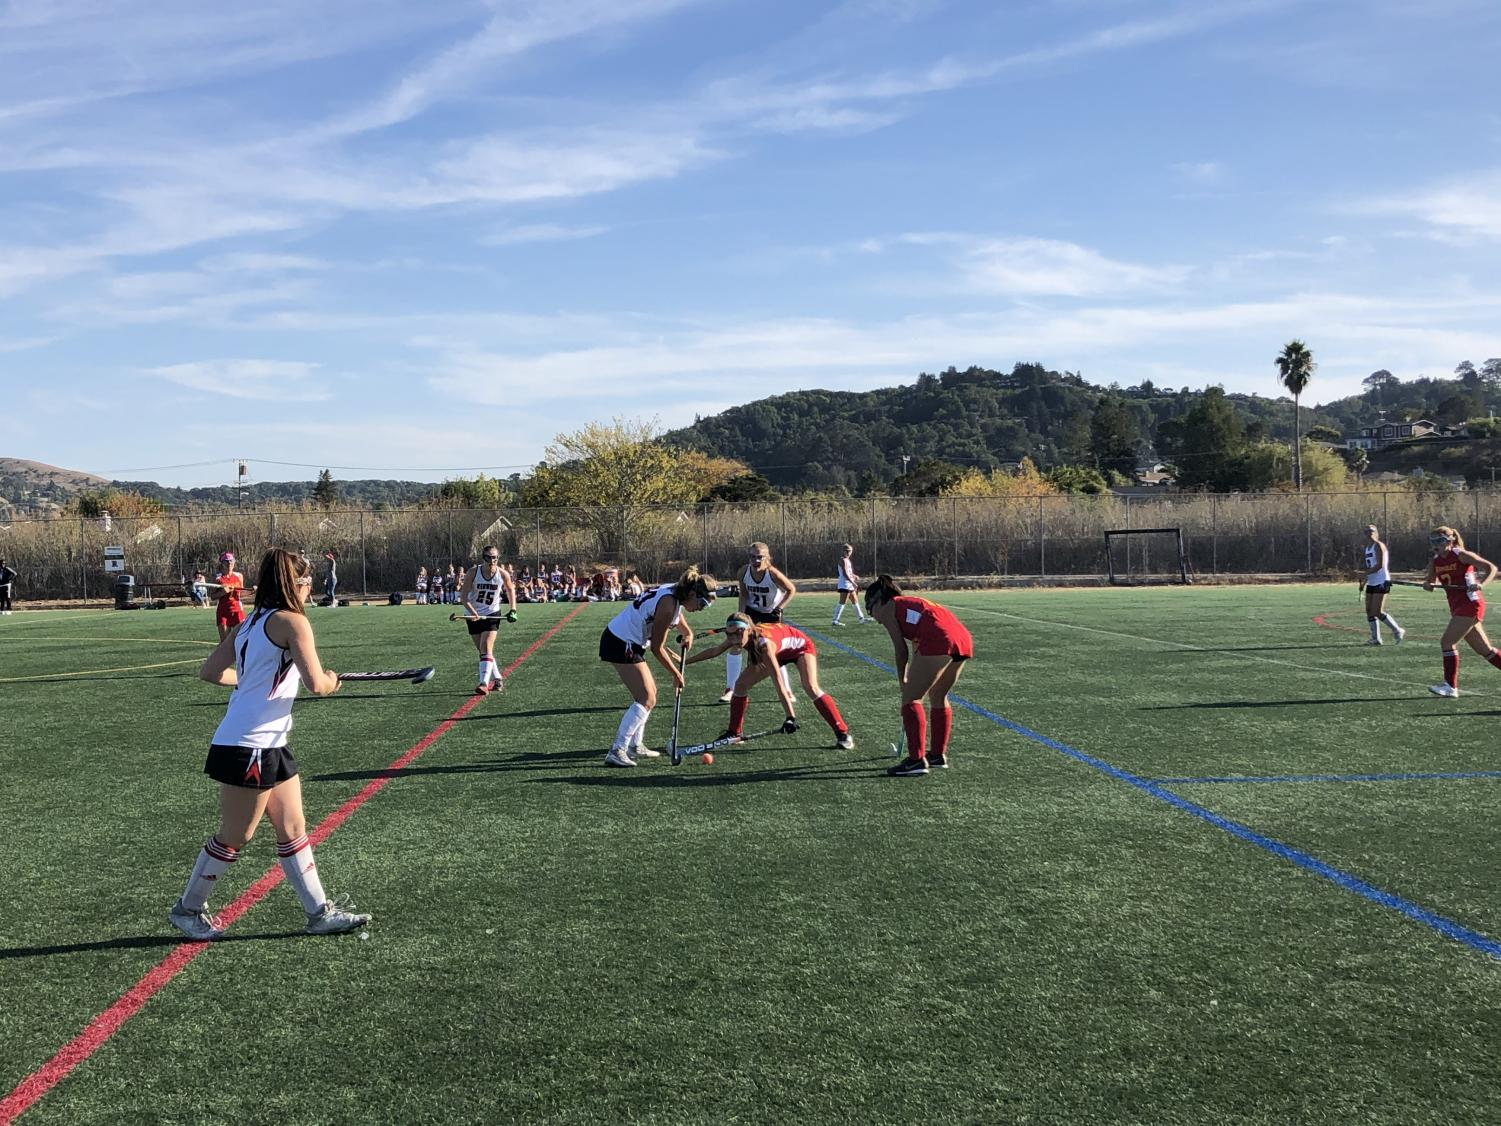 The Redwood girls field hockey team battled it out against Berkeley High on Oct. 10, taking the win with a final score of 6-2.